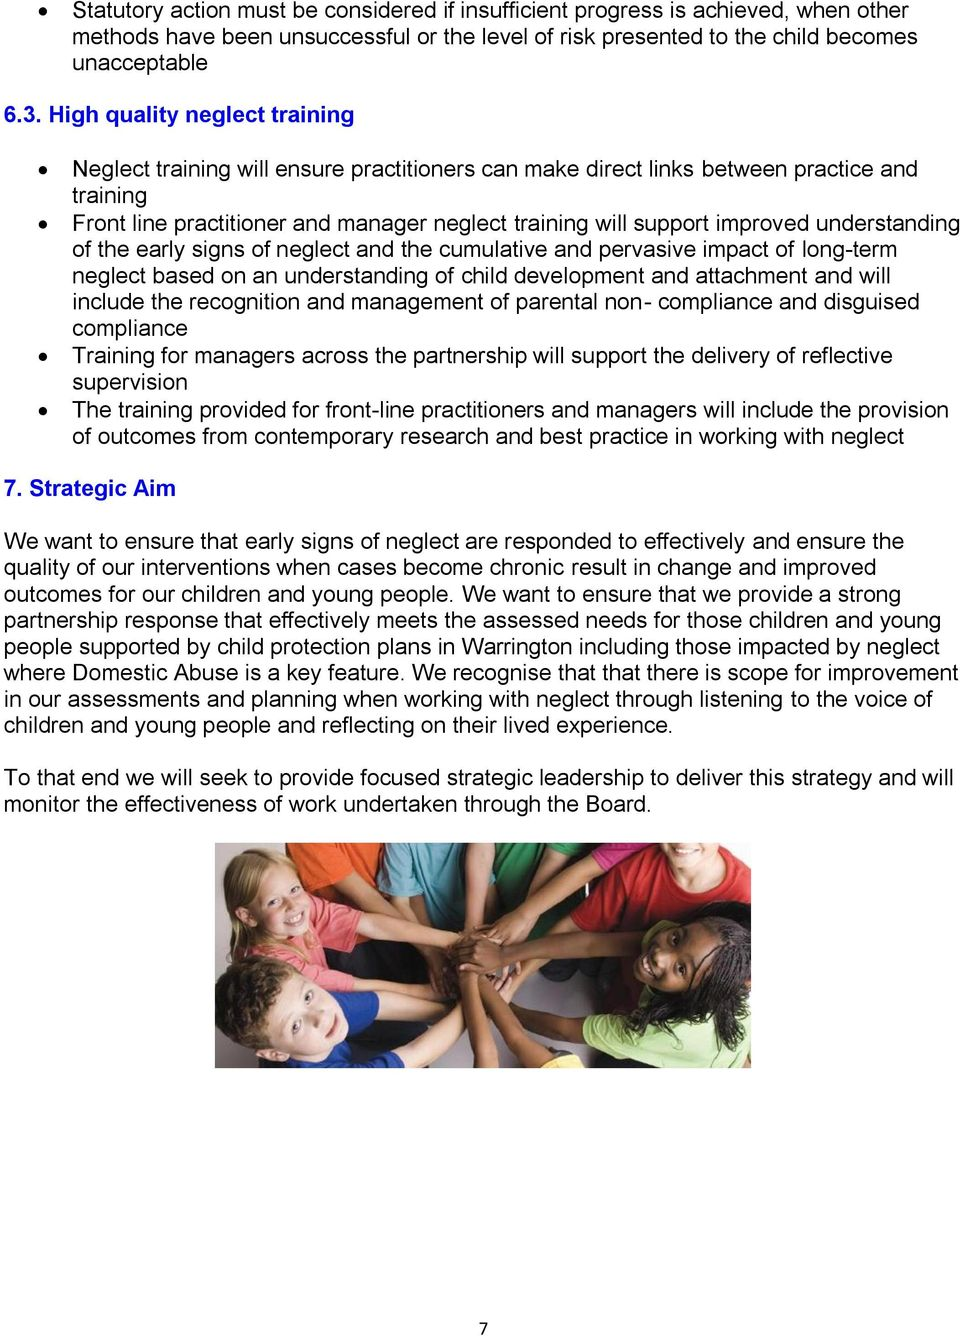 understanding of the early signs of neglect and the cumulative and pervasive impact of long-term neglect based on an understanding of child development and attachment and will include the recognition